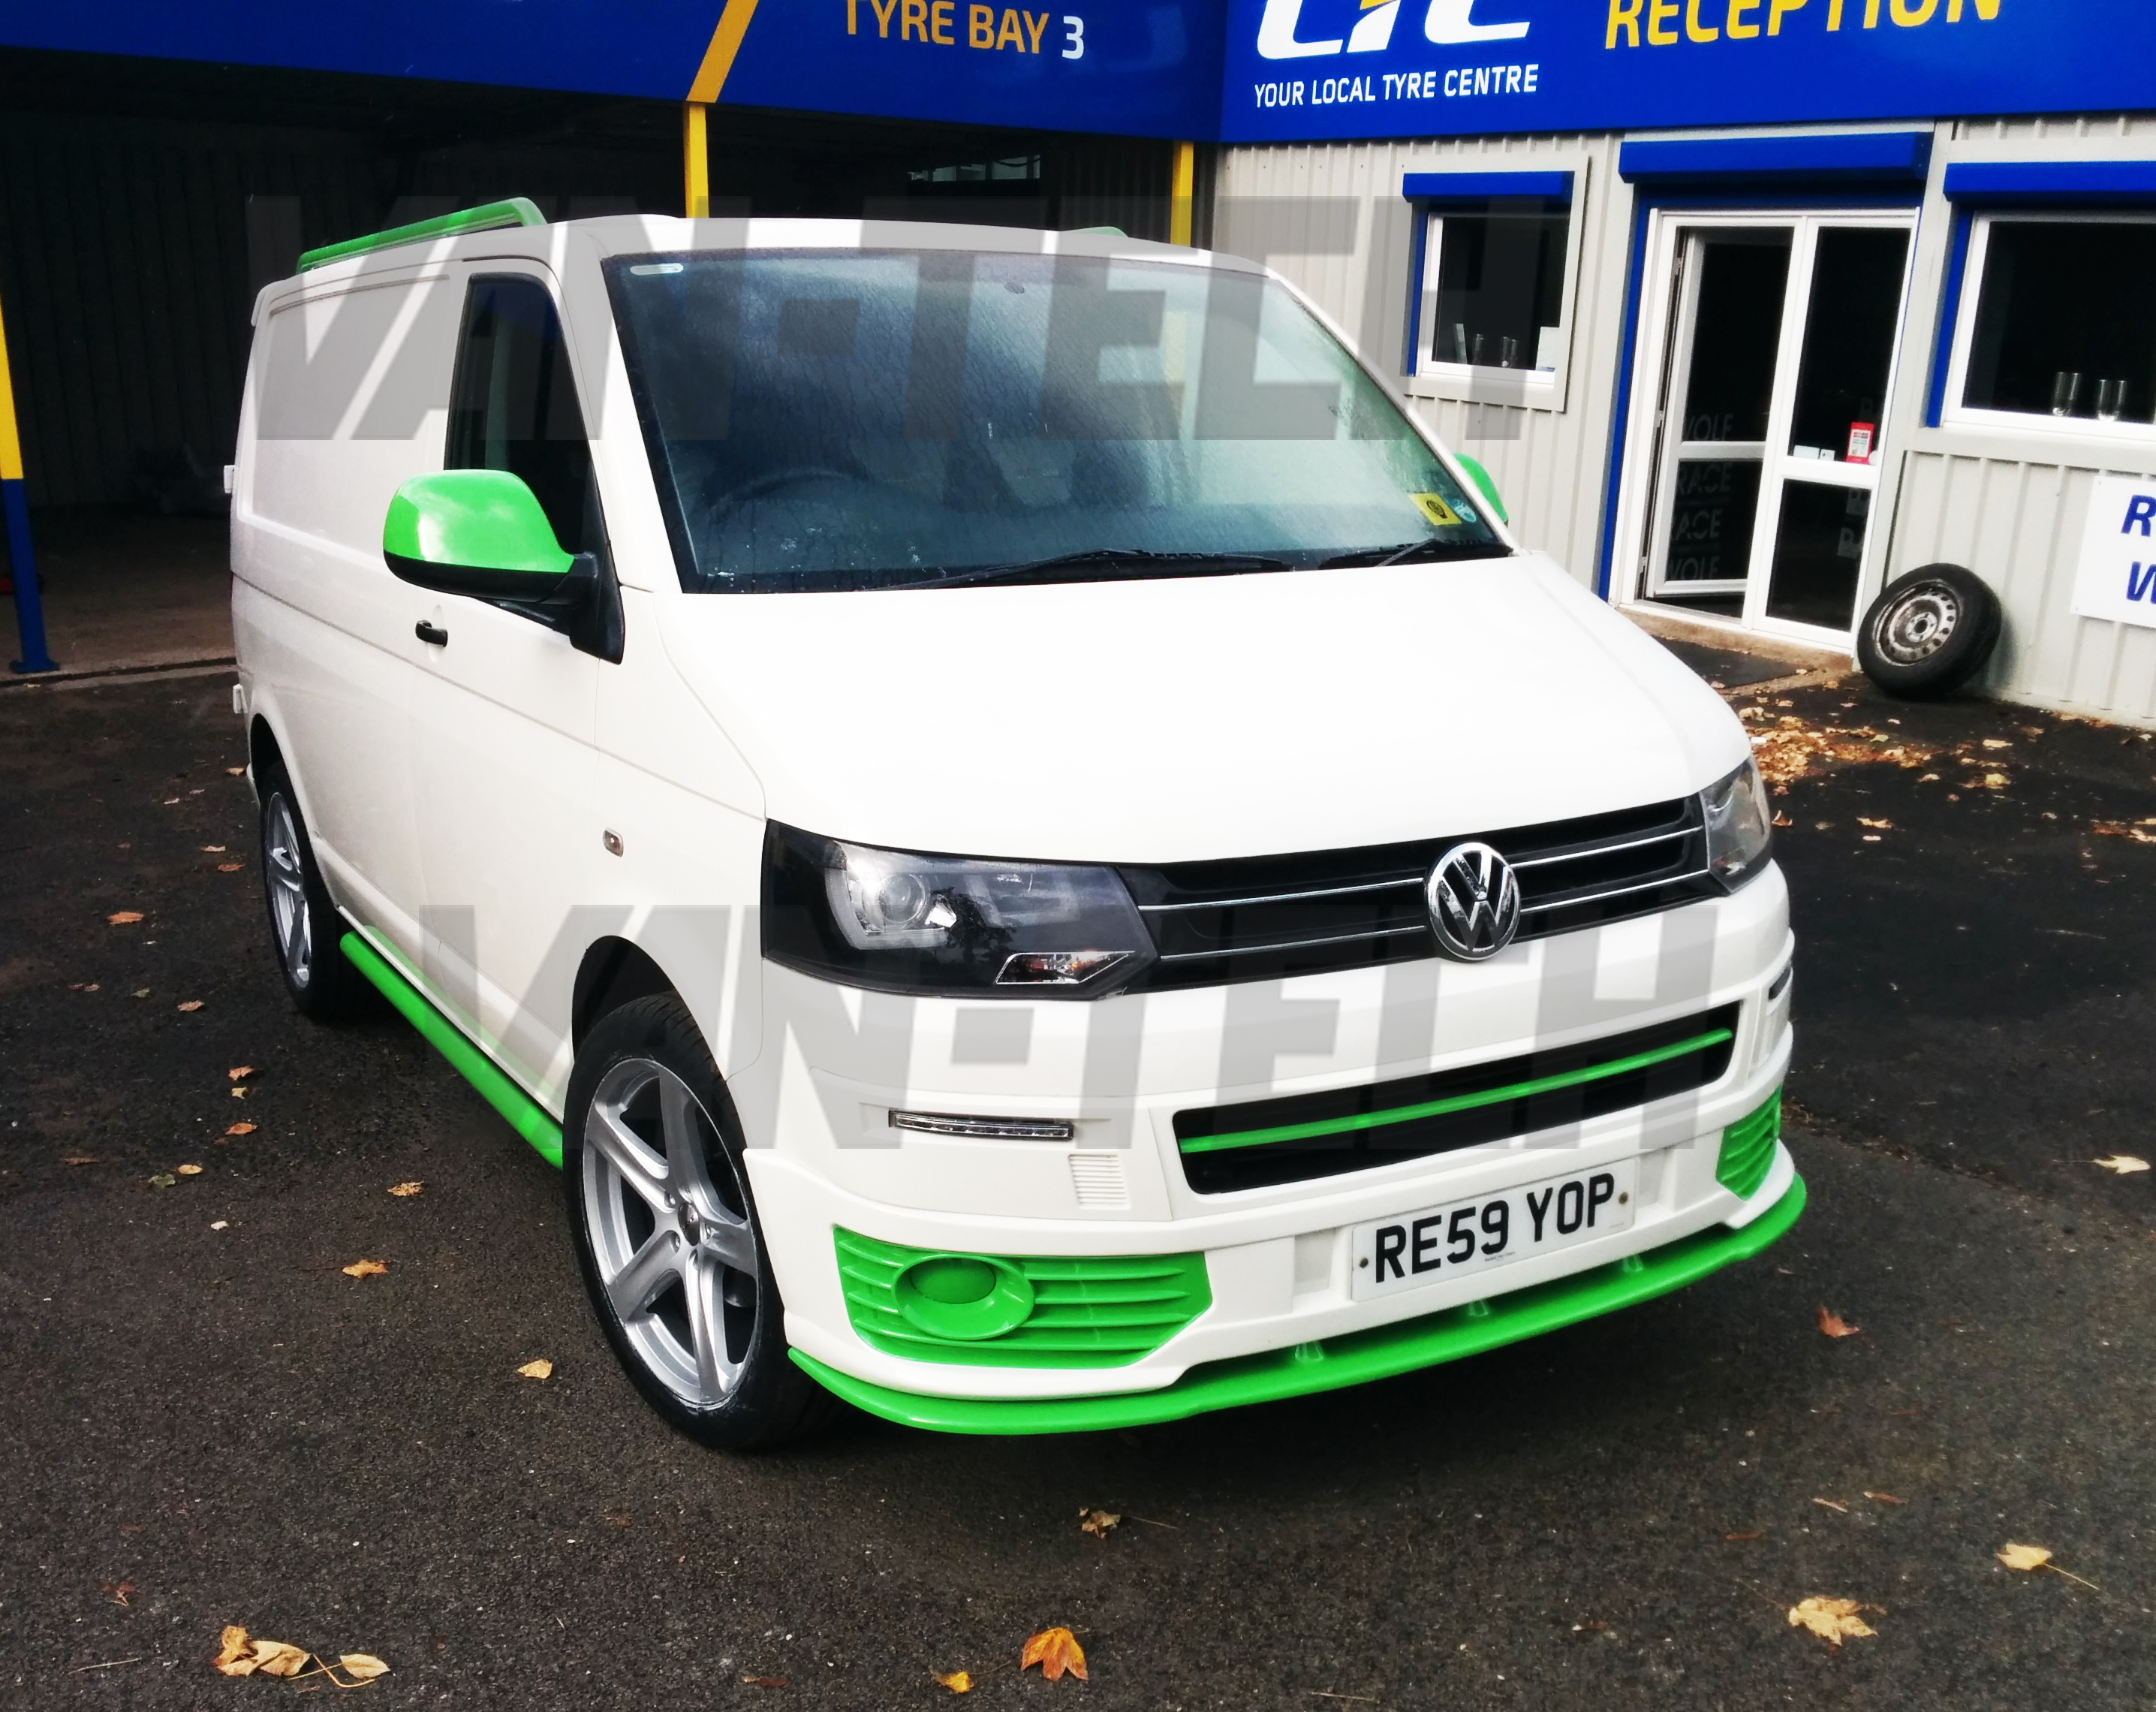 sold volkswagen transporter t5 van white and green 2009 1 9 swb van tech. Black Bedroom Furniture Sets. Home Design Ideas